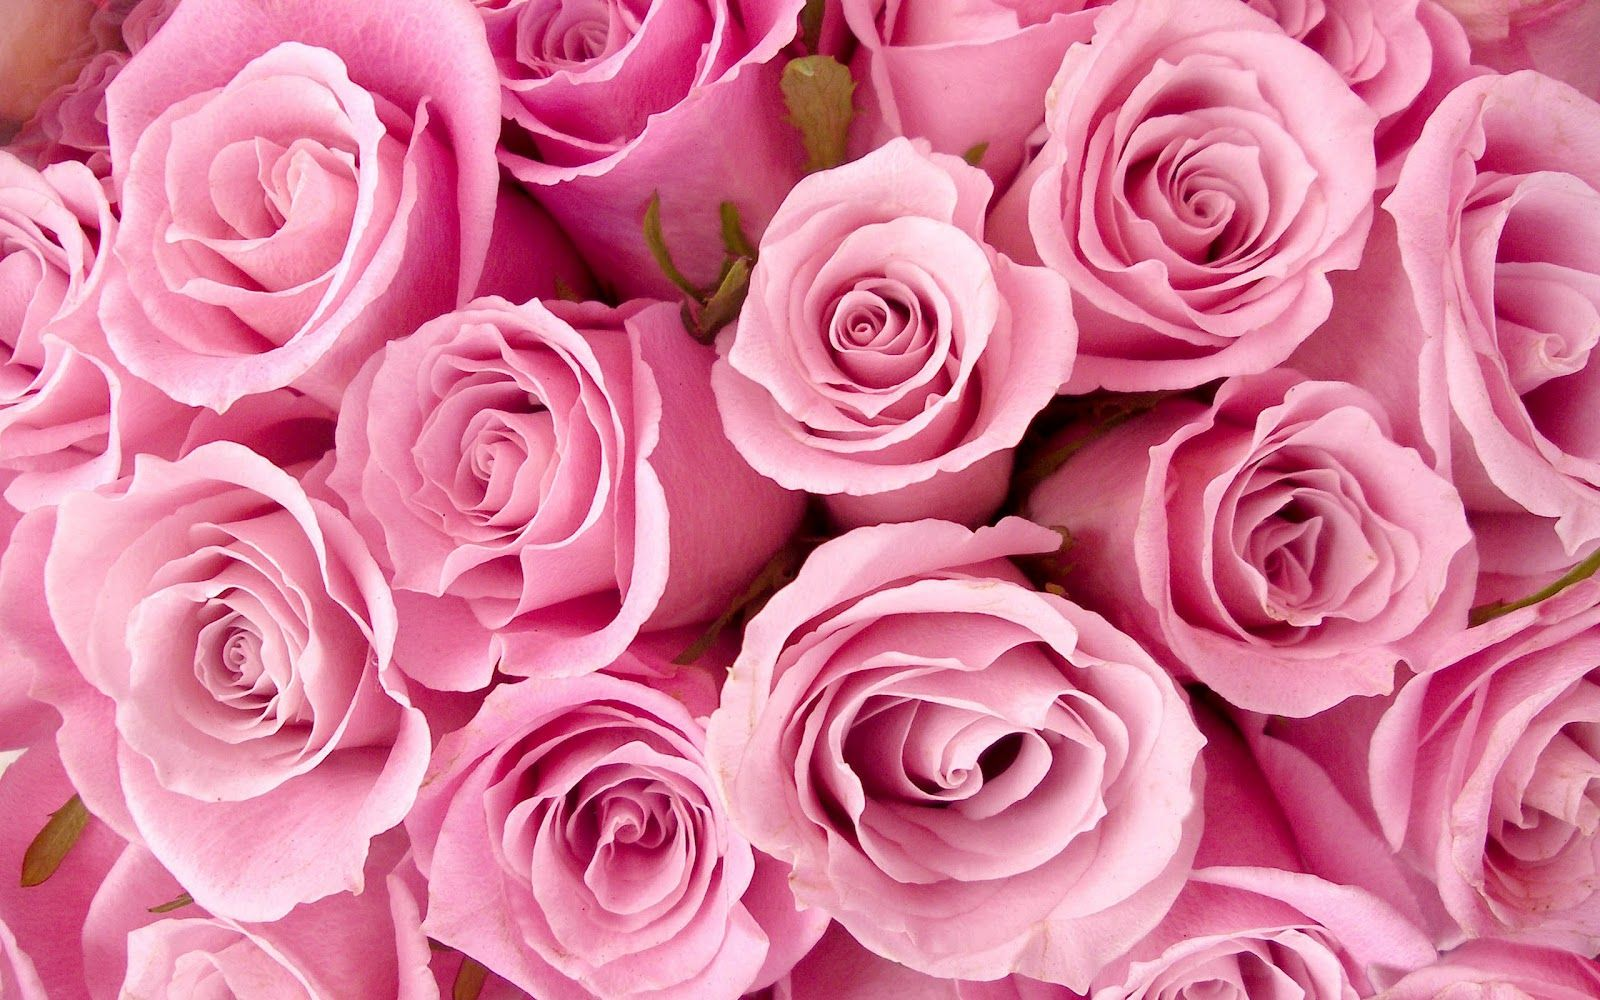 The Color Pink Means Valentines Roses Colors And Meanings